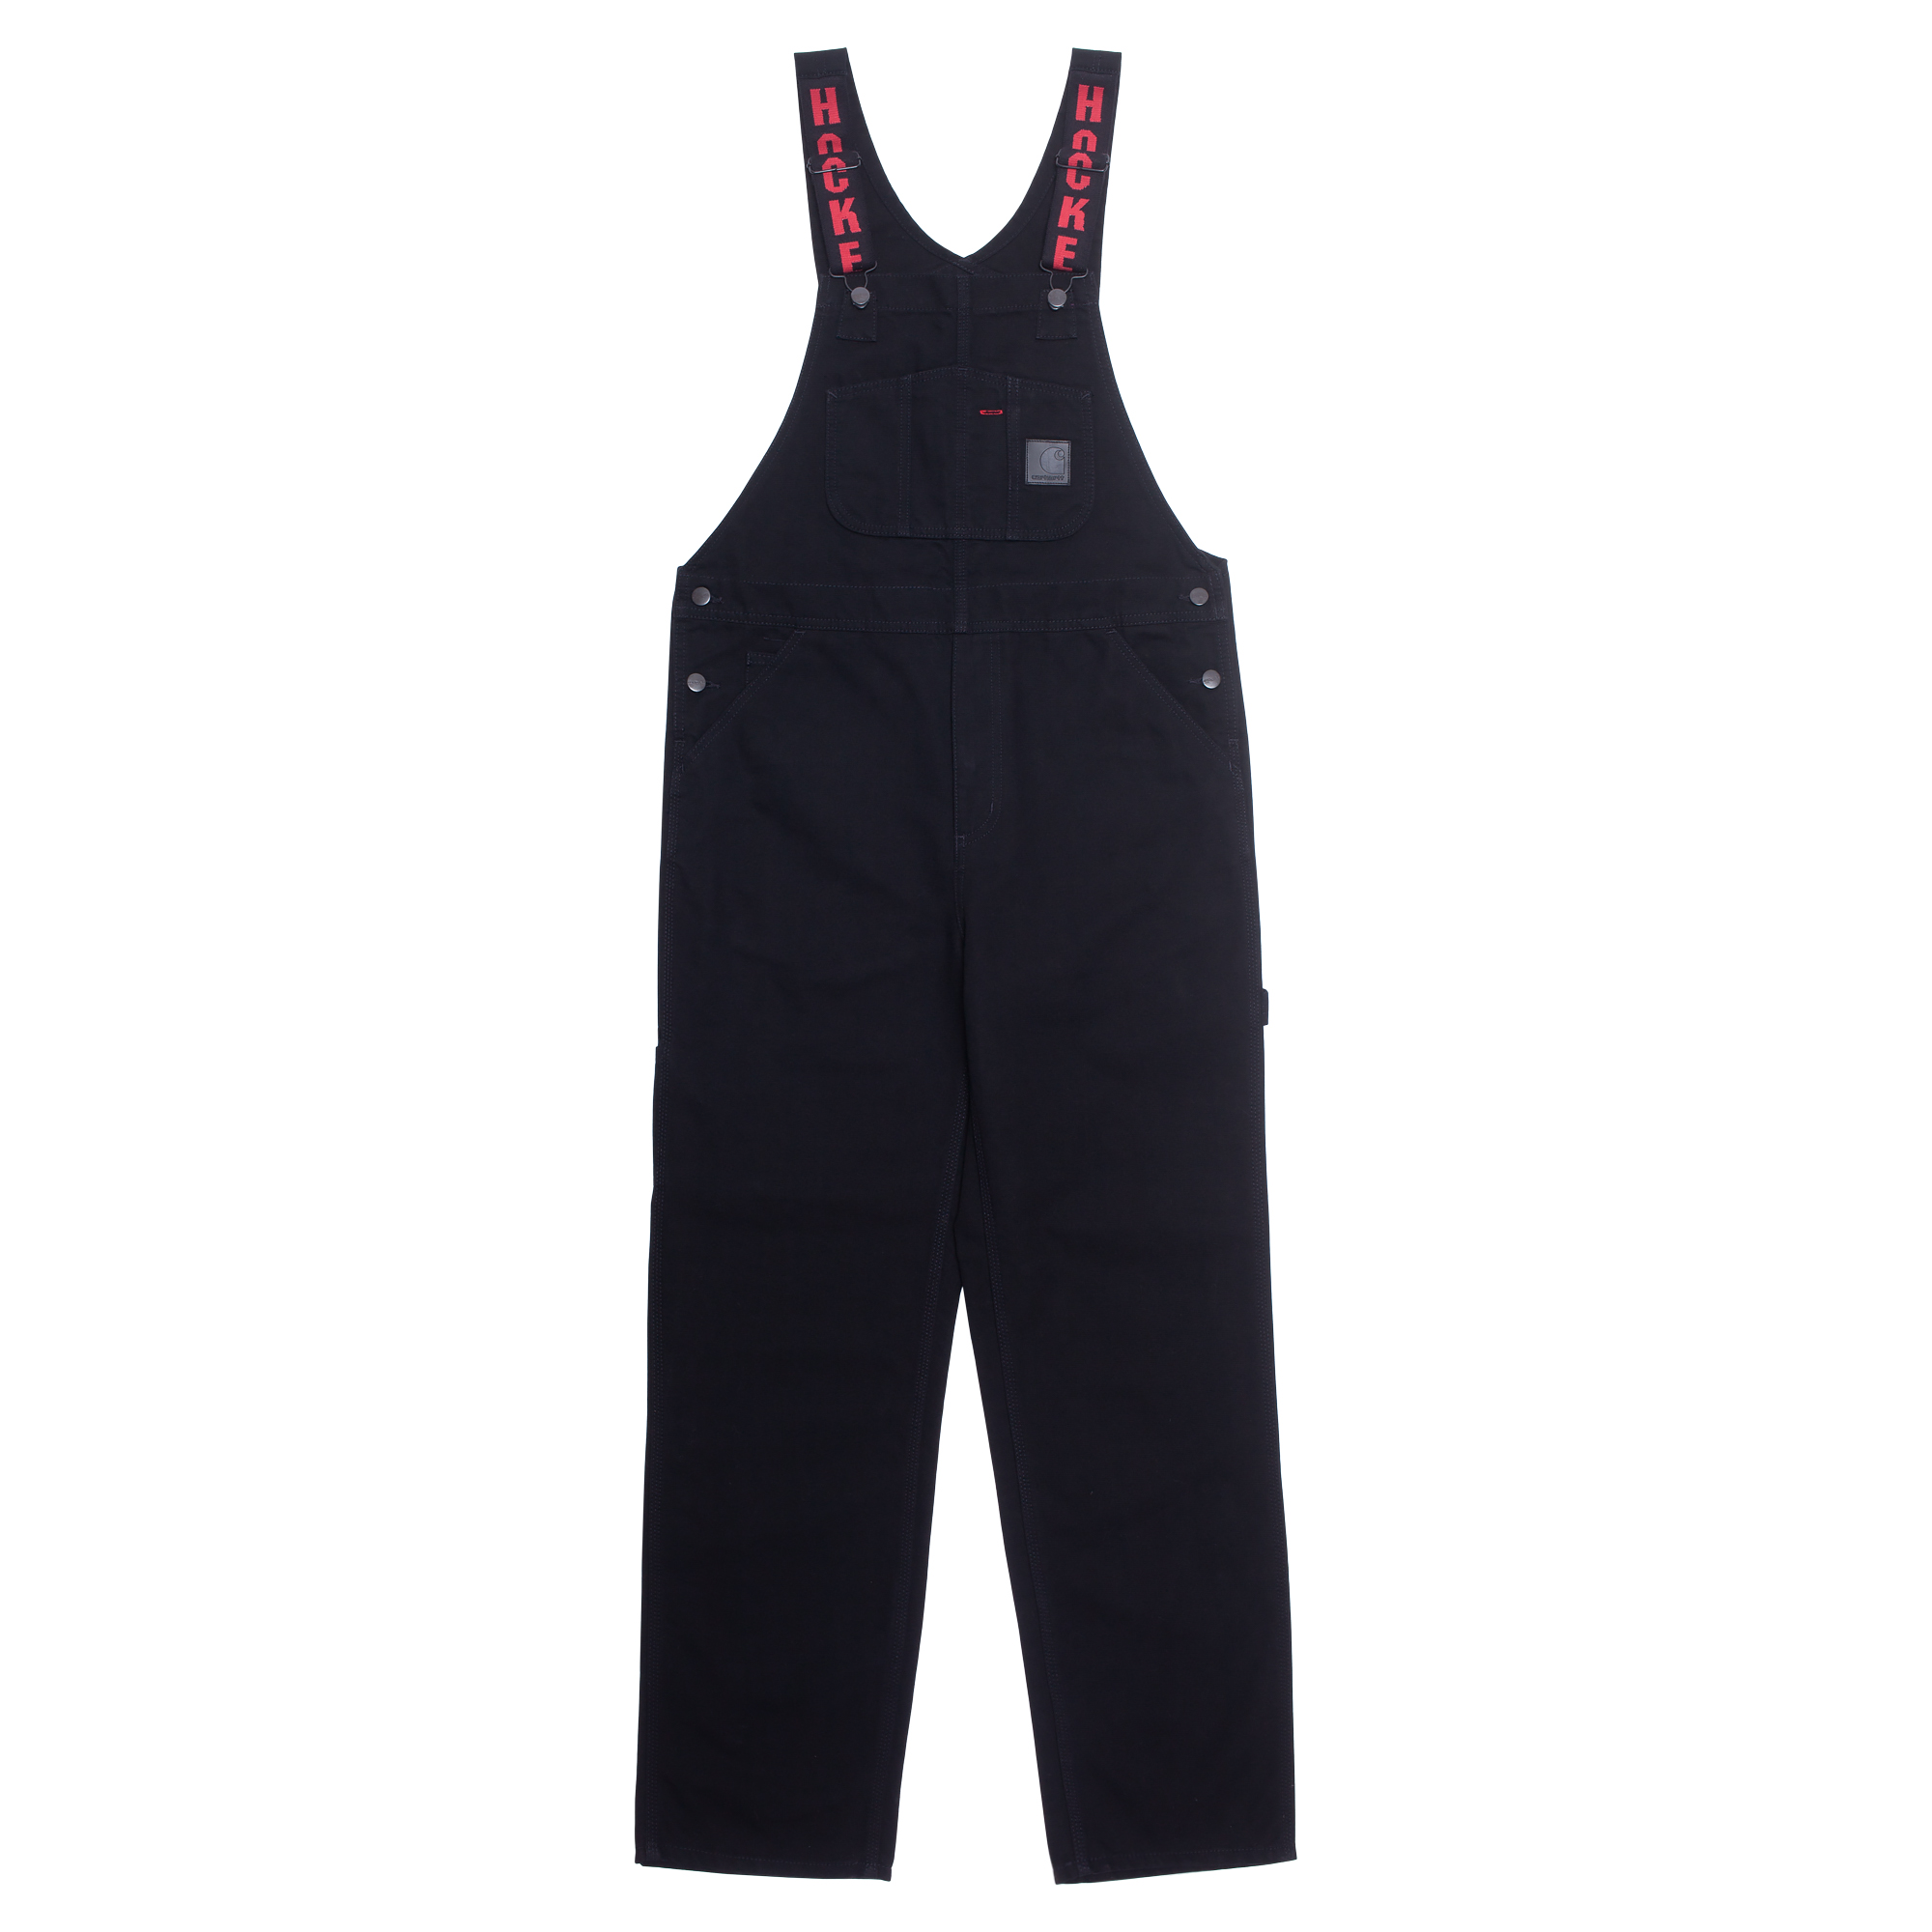 2021_HockeyCarhartt_Collaboration_GraphicDetail_Apparel_Overalls_Black_Front